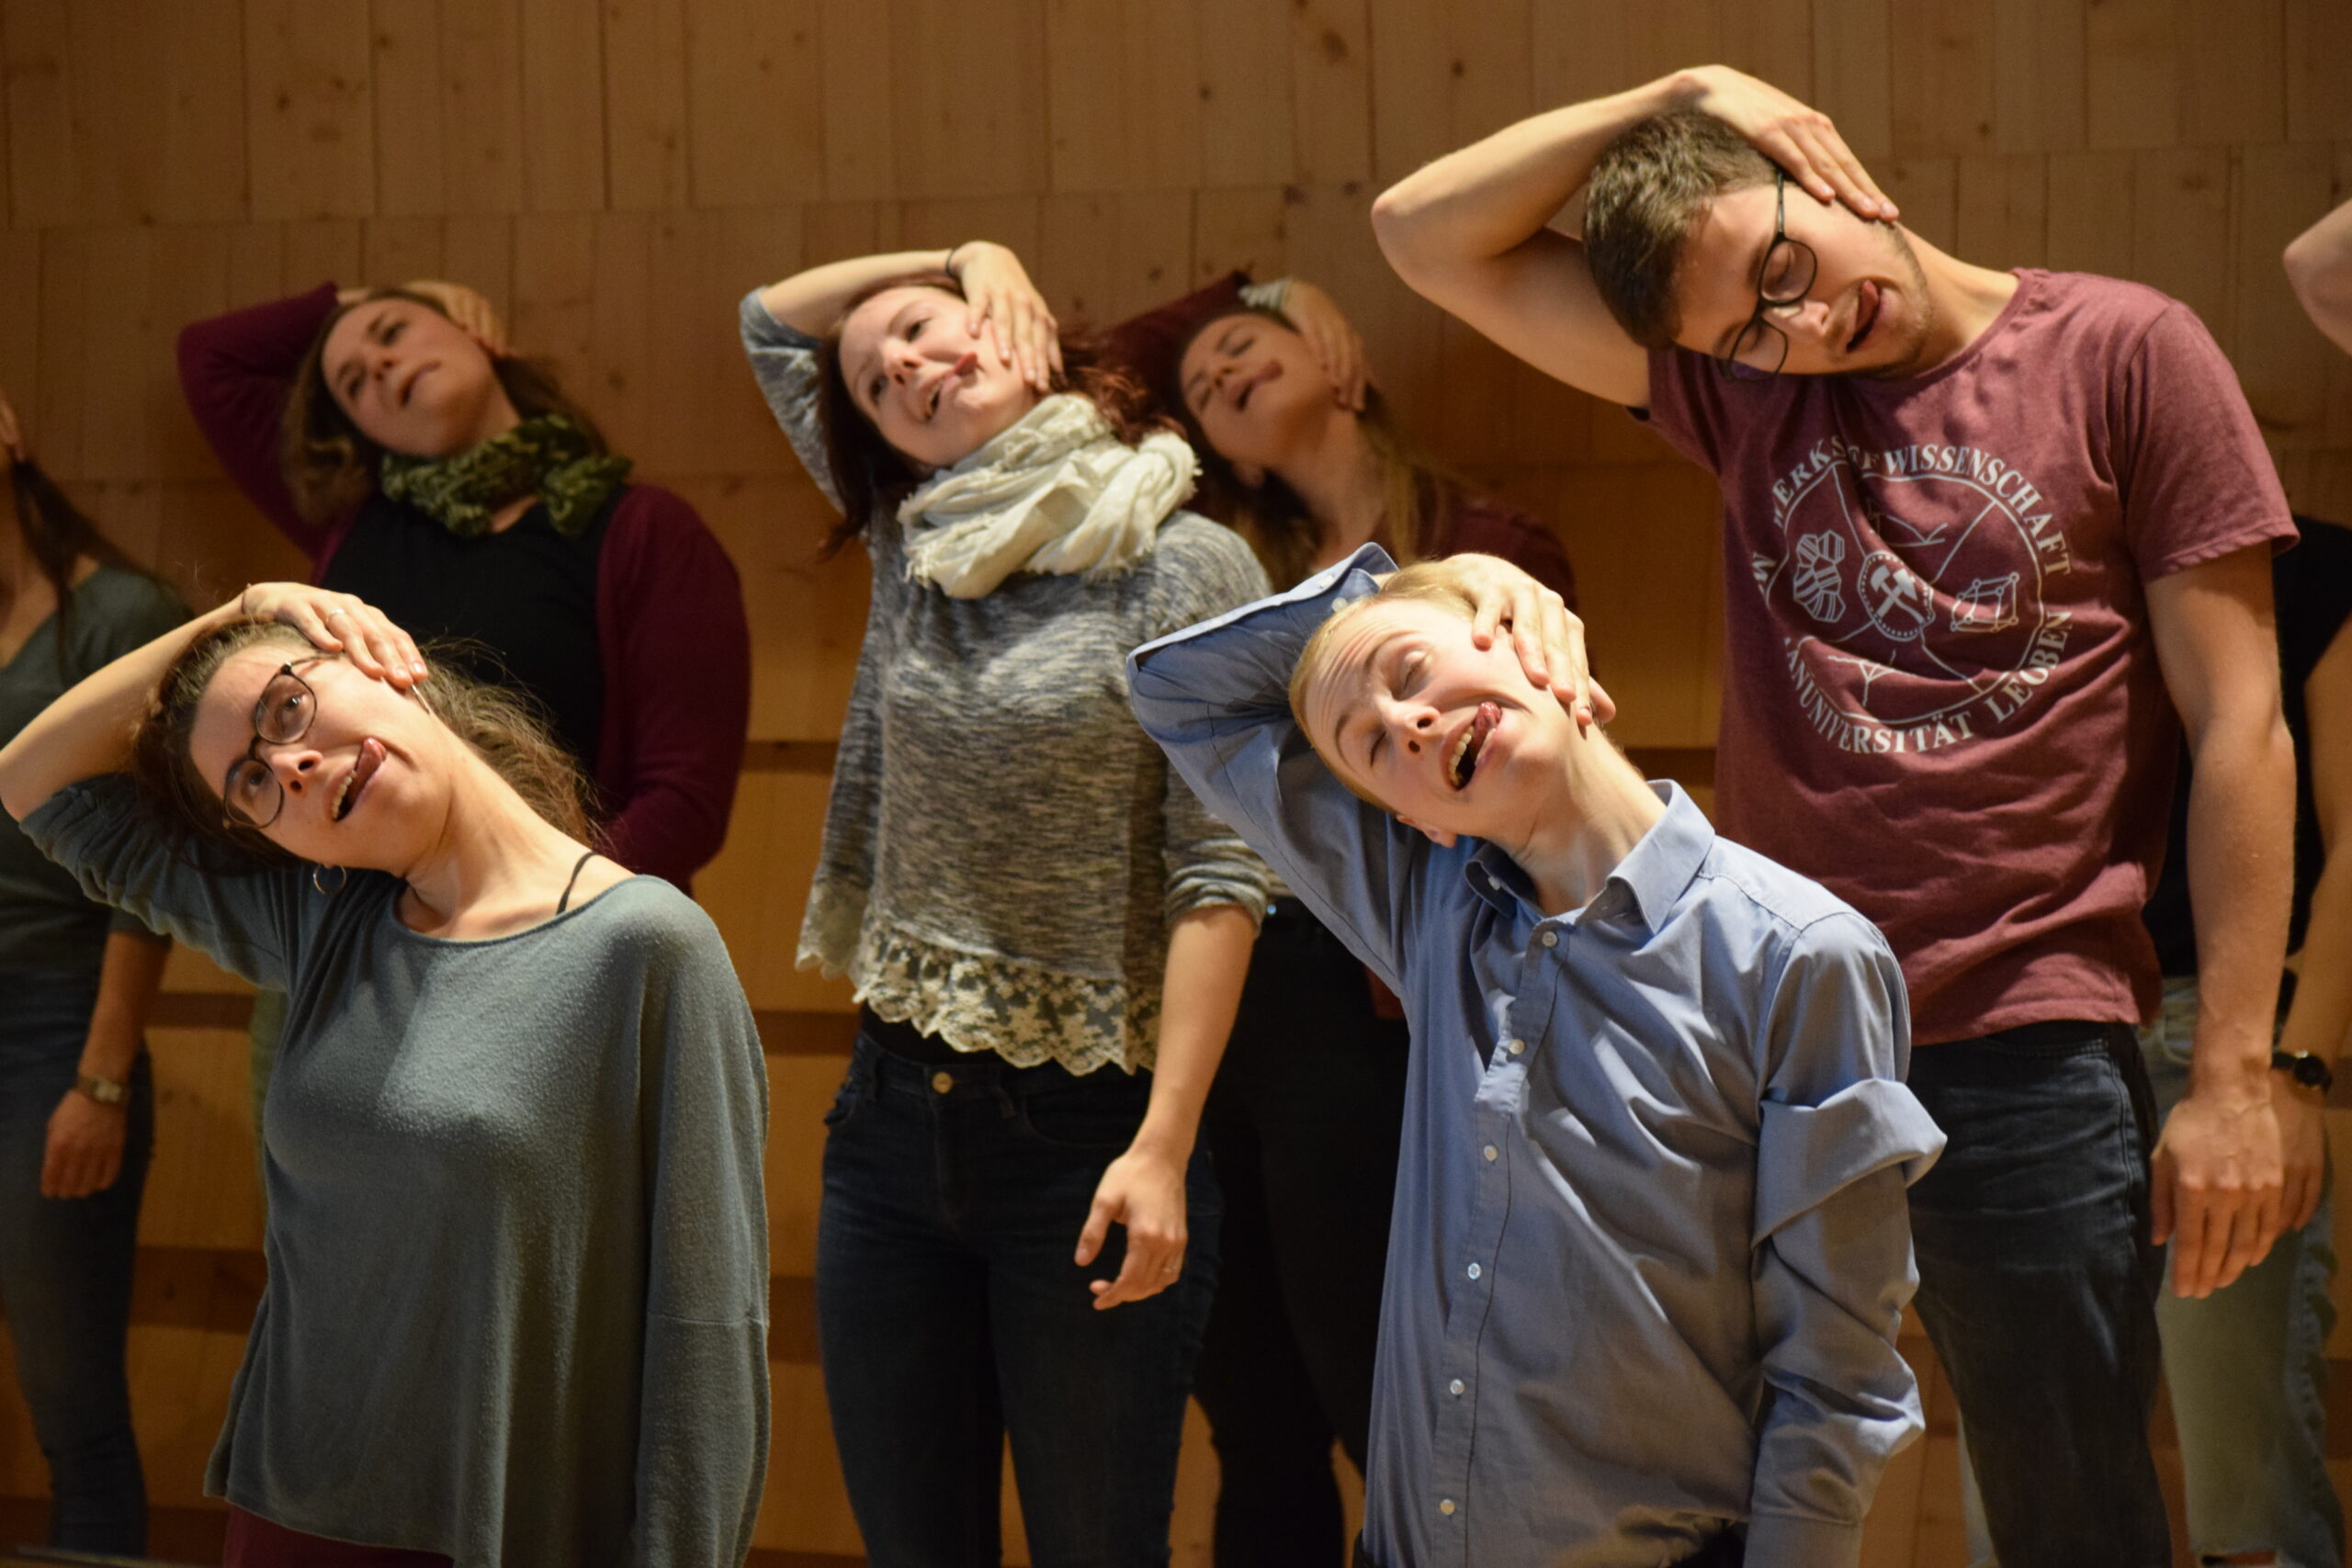 Lucia Haab, Austria: Weird Together, 2019, Kärntner Landesjugendchor, Austria - On Sunday morning, everyone is tired after Saturday's rehearsals and a full night of socialising and singing. Stretching the head towards the shoulder, pointing the tongue in the other direction ... OK, we could reconsider this exercise. But clearly, our conductors knew why they chose it. Sometimes one has to do something weird for the sake of singing better.